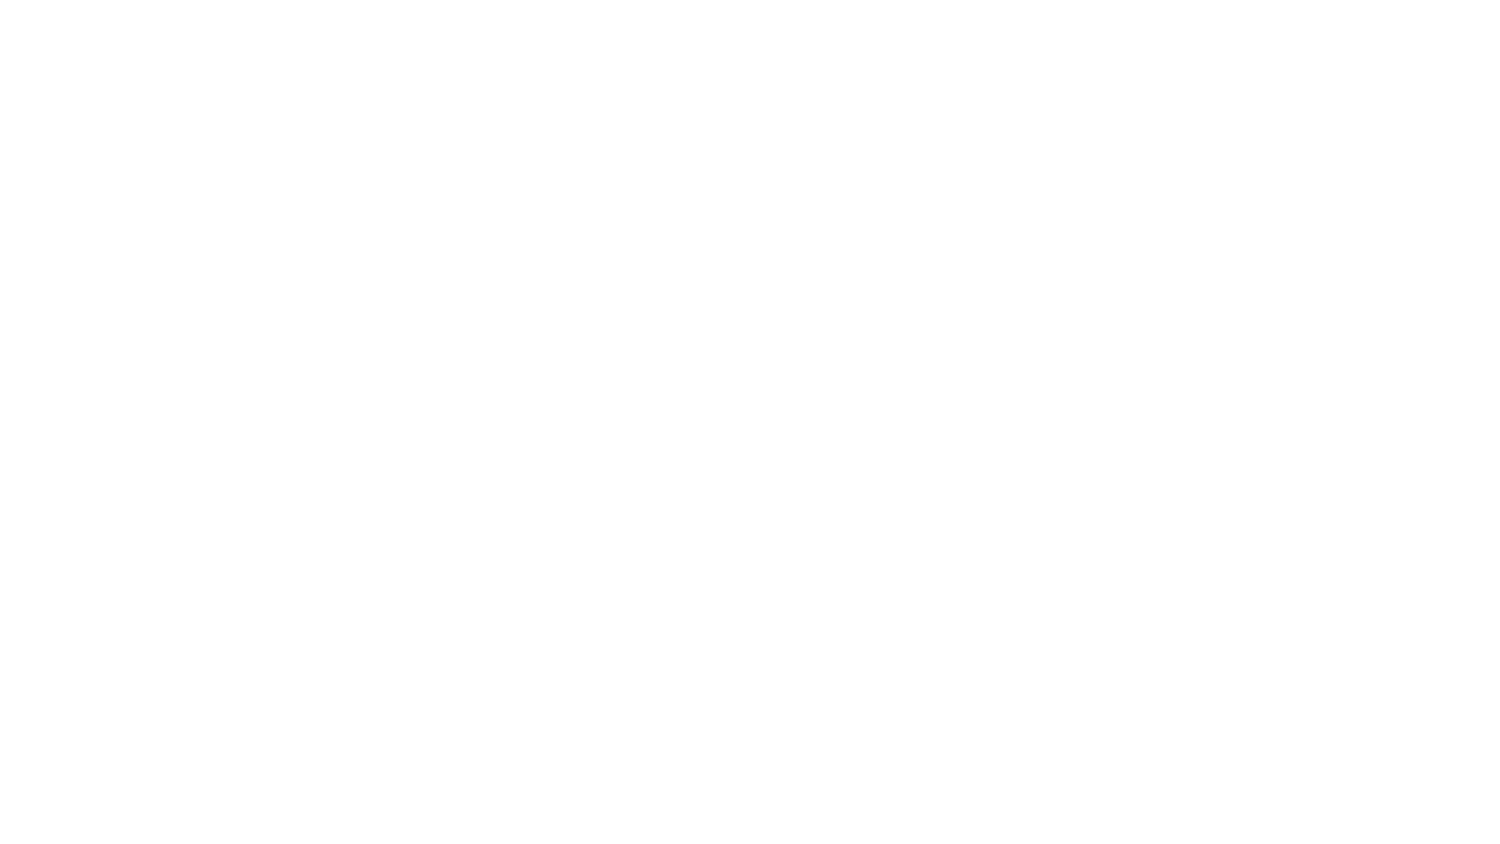 Green Means Go!